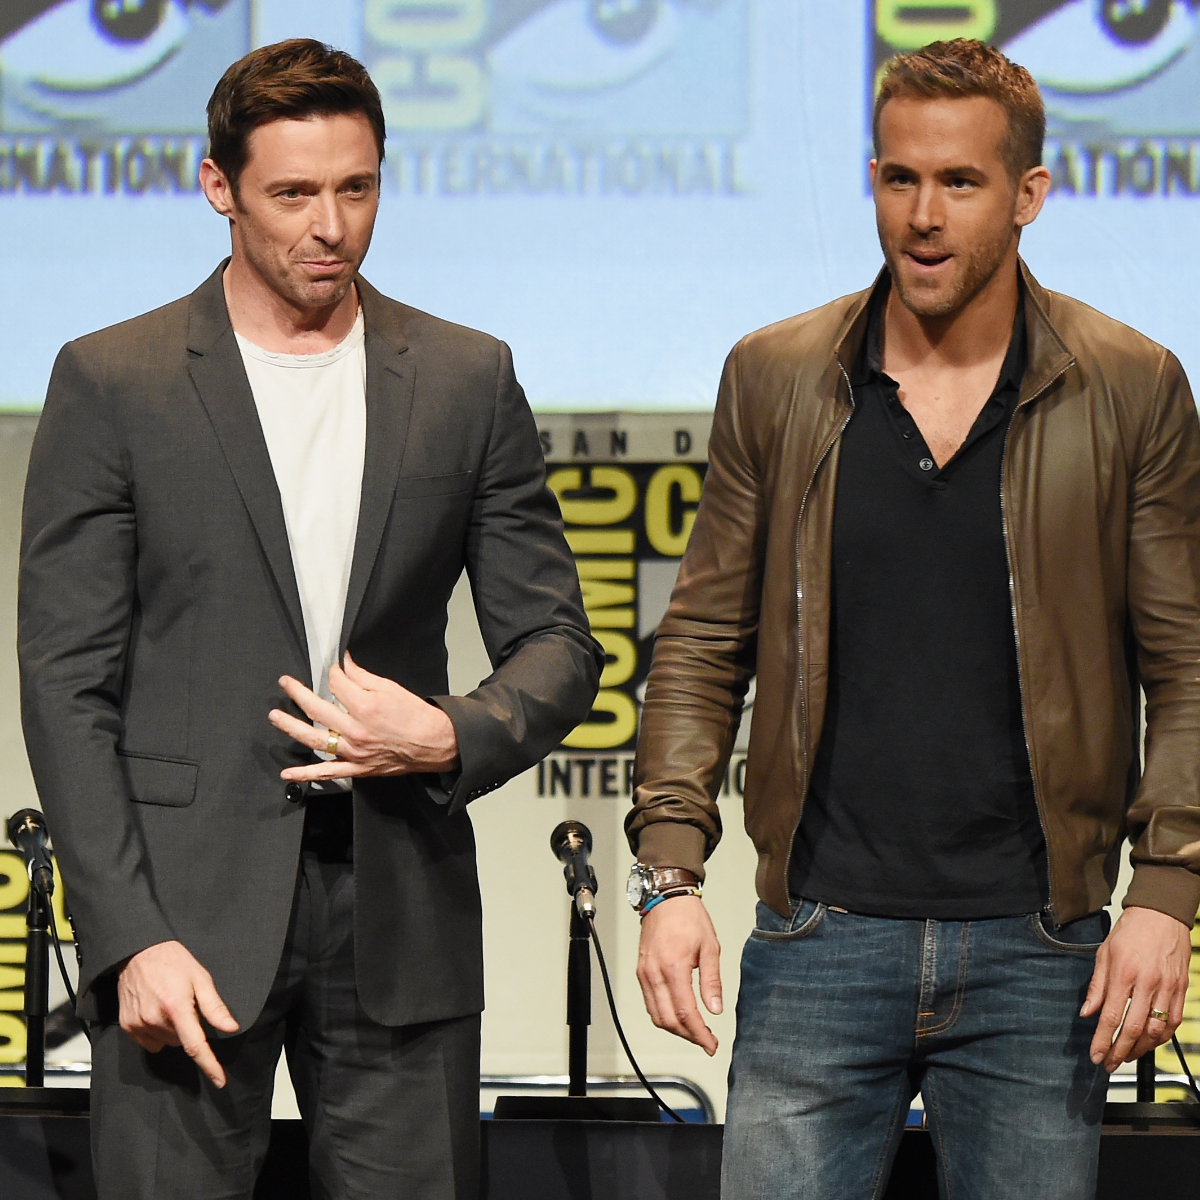 Hugh Jackman takes out his Wolverine claws in response to Ryan Reynolds' accusations